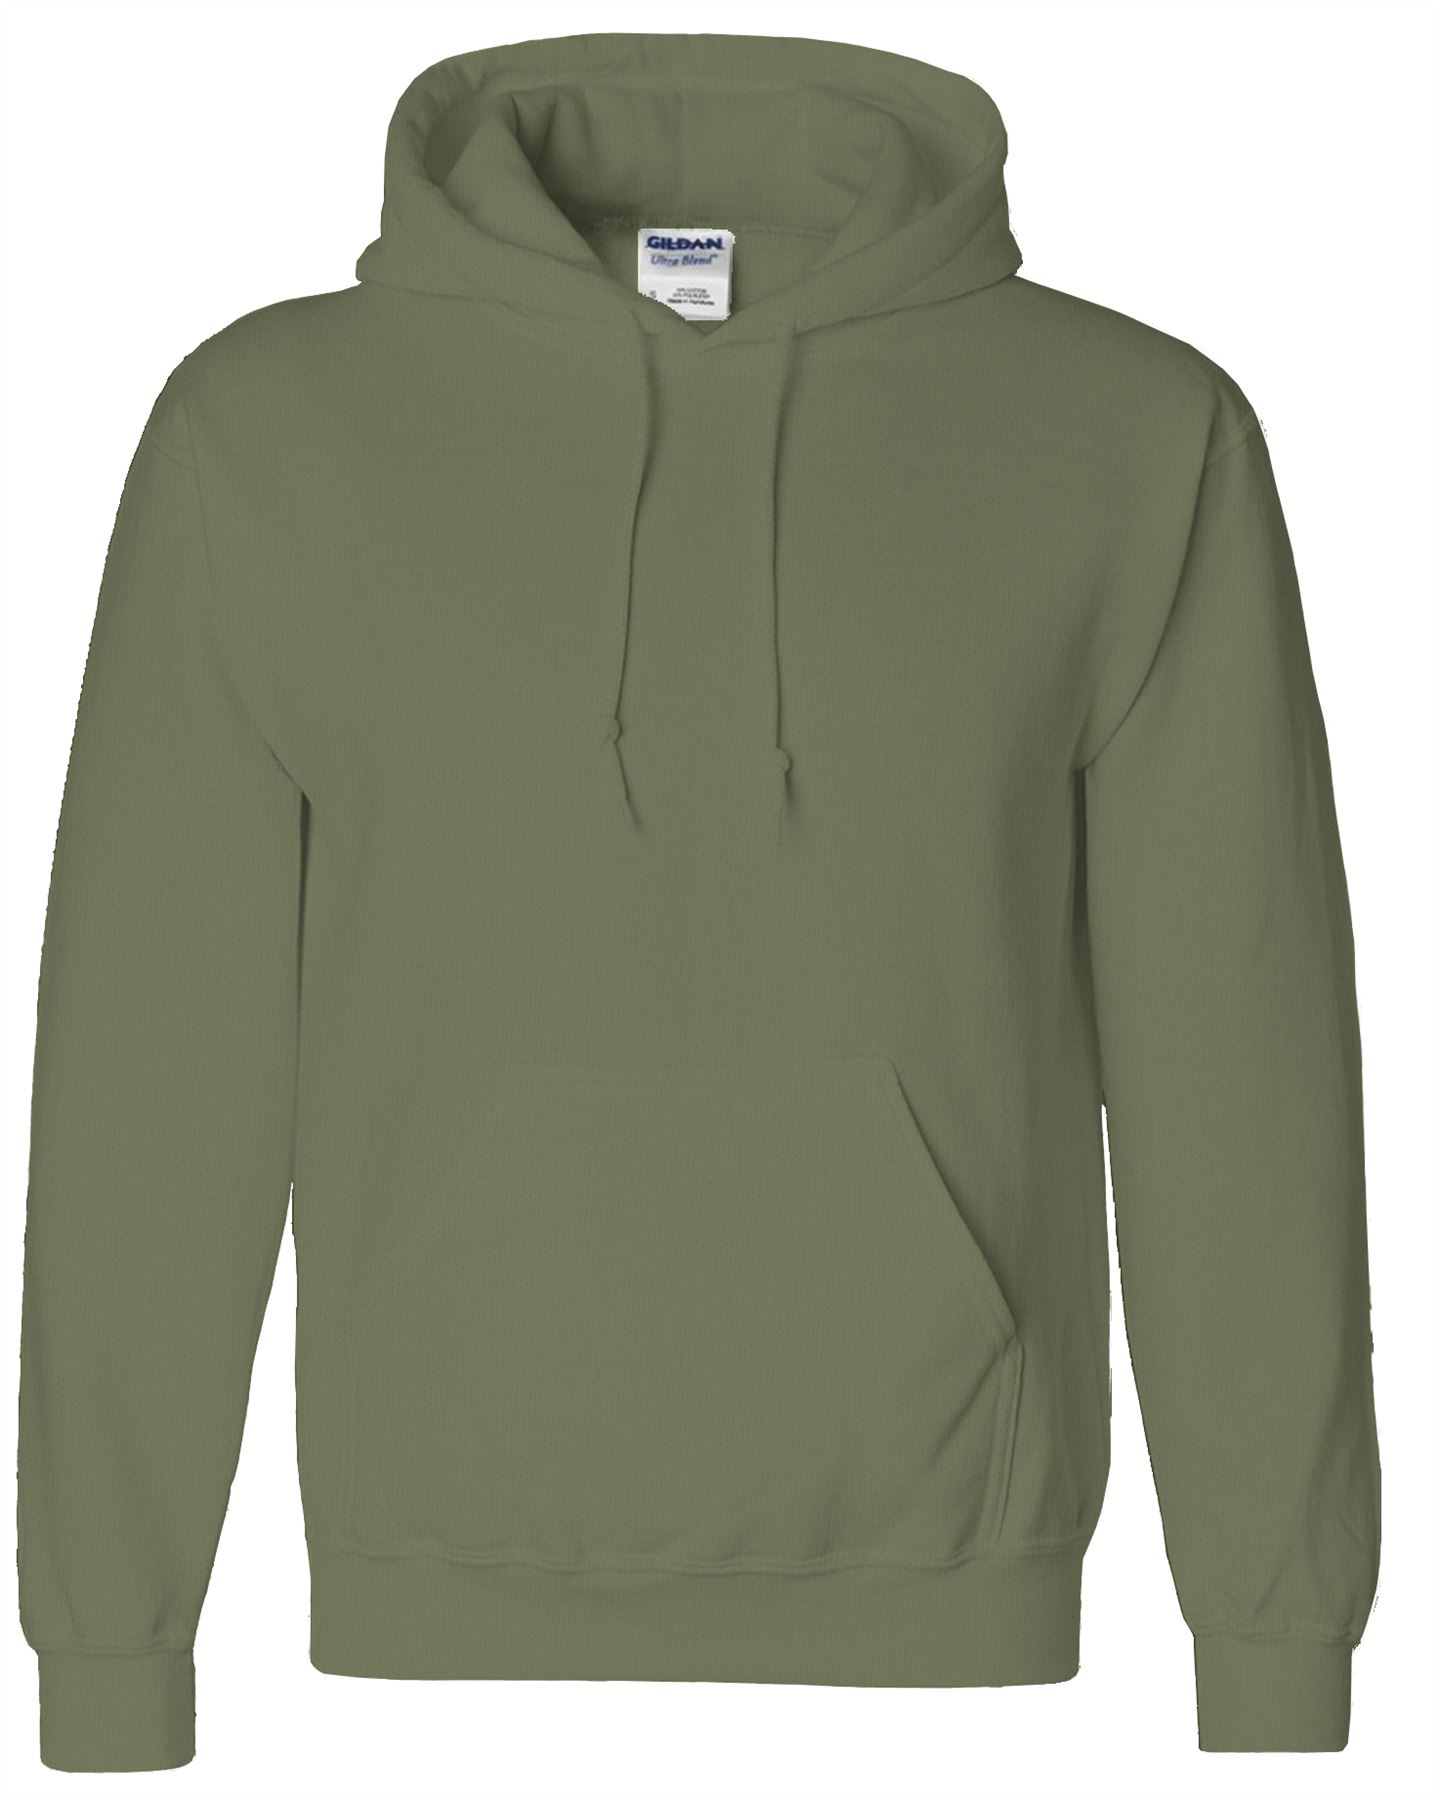 New-Gildan-Plain-Cotton-Heavy-Blend-Hoodie-Blank-